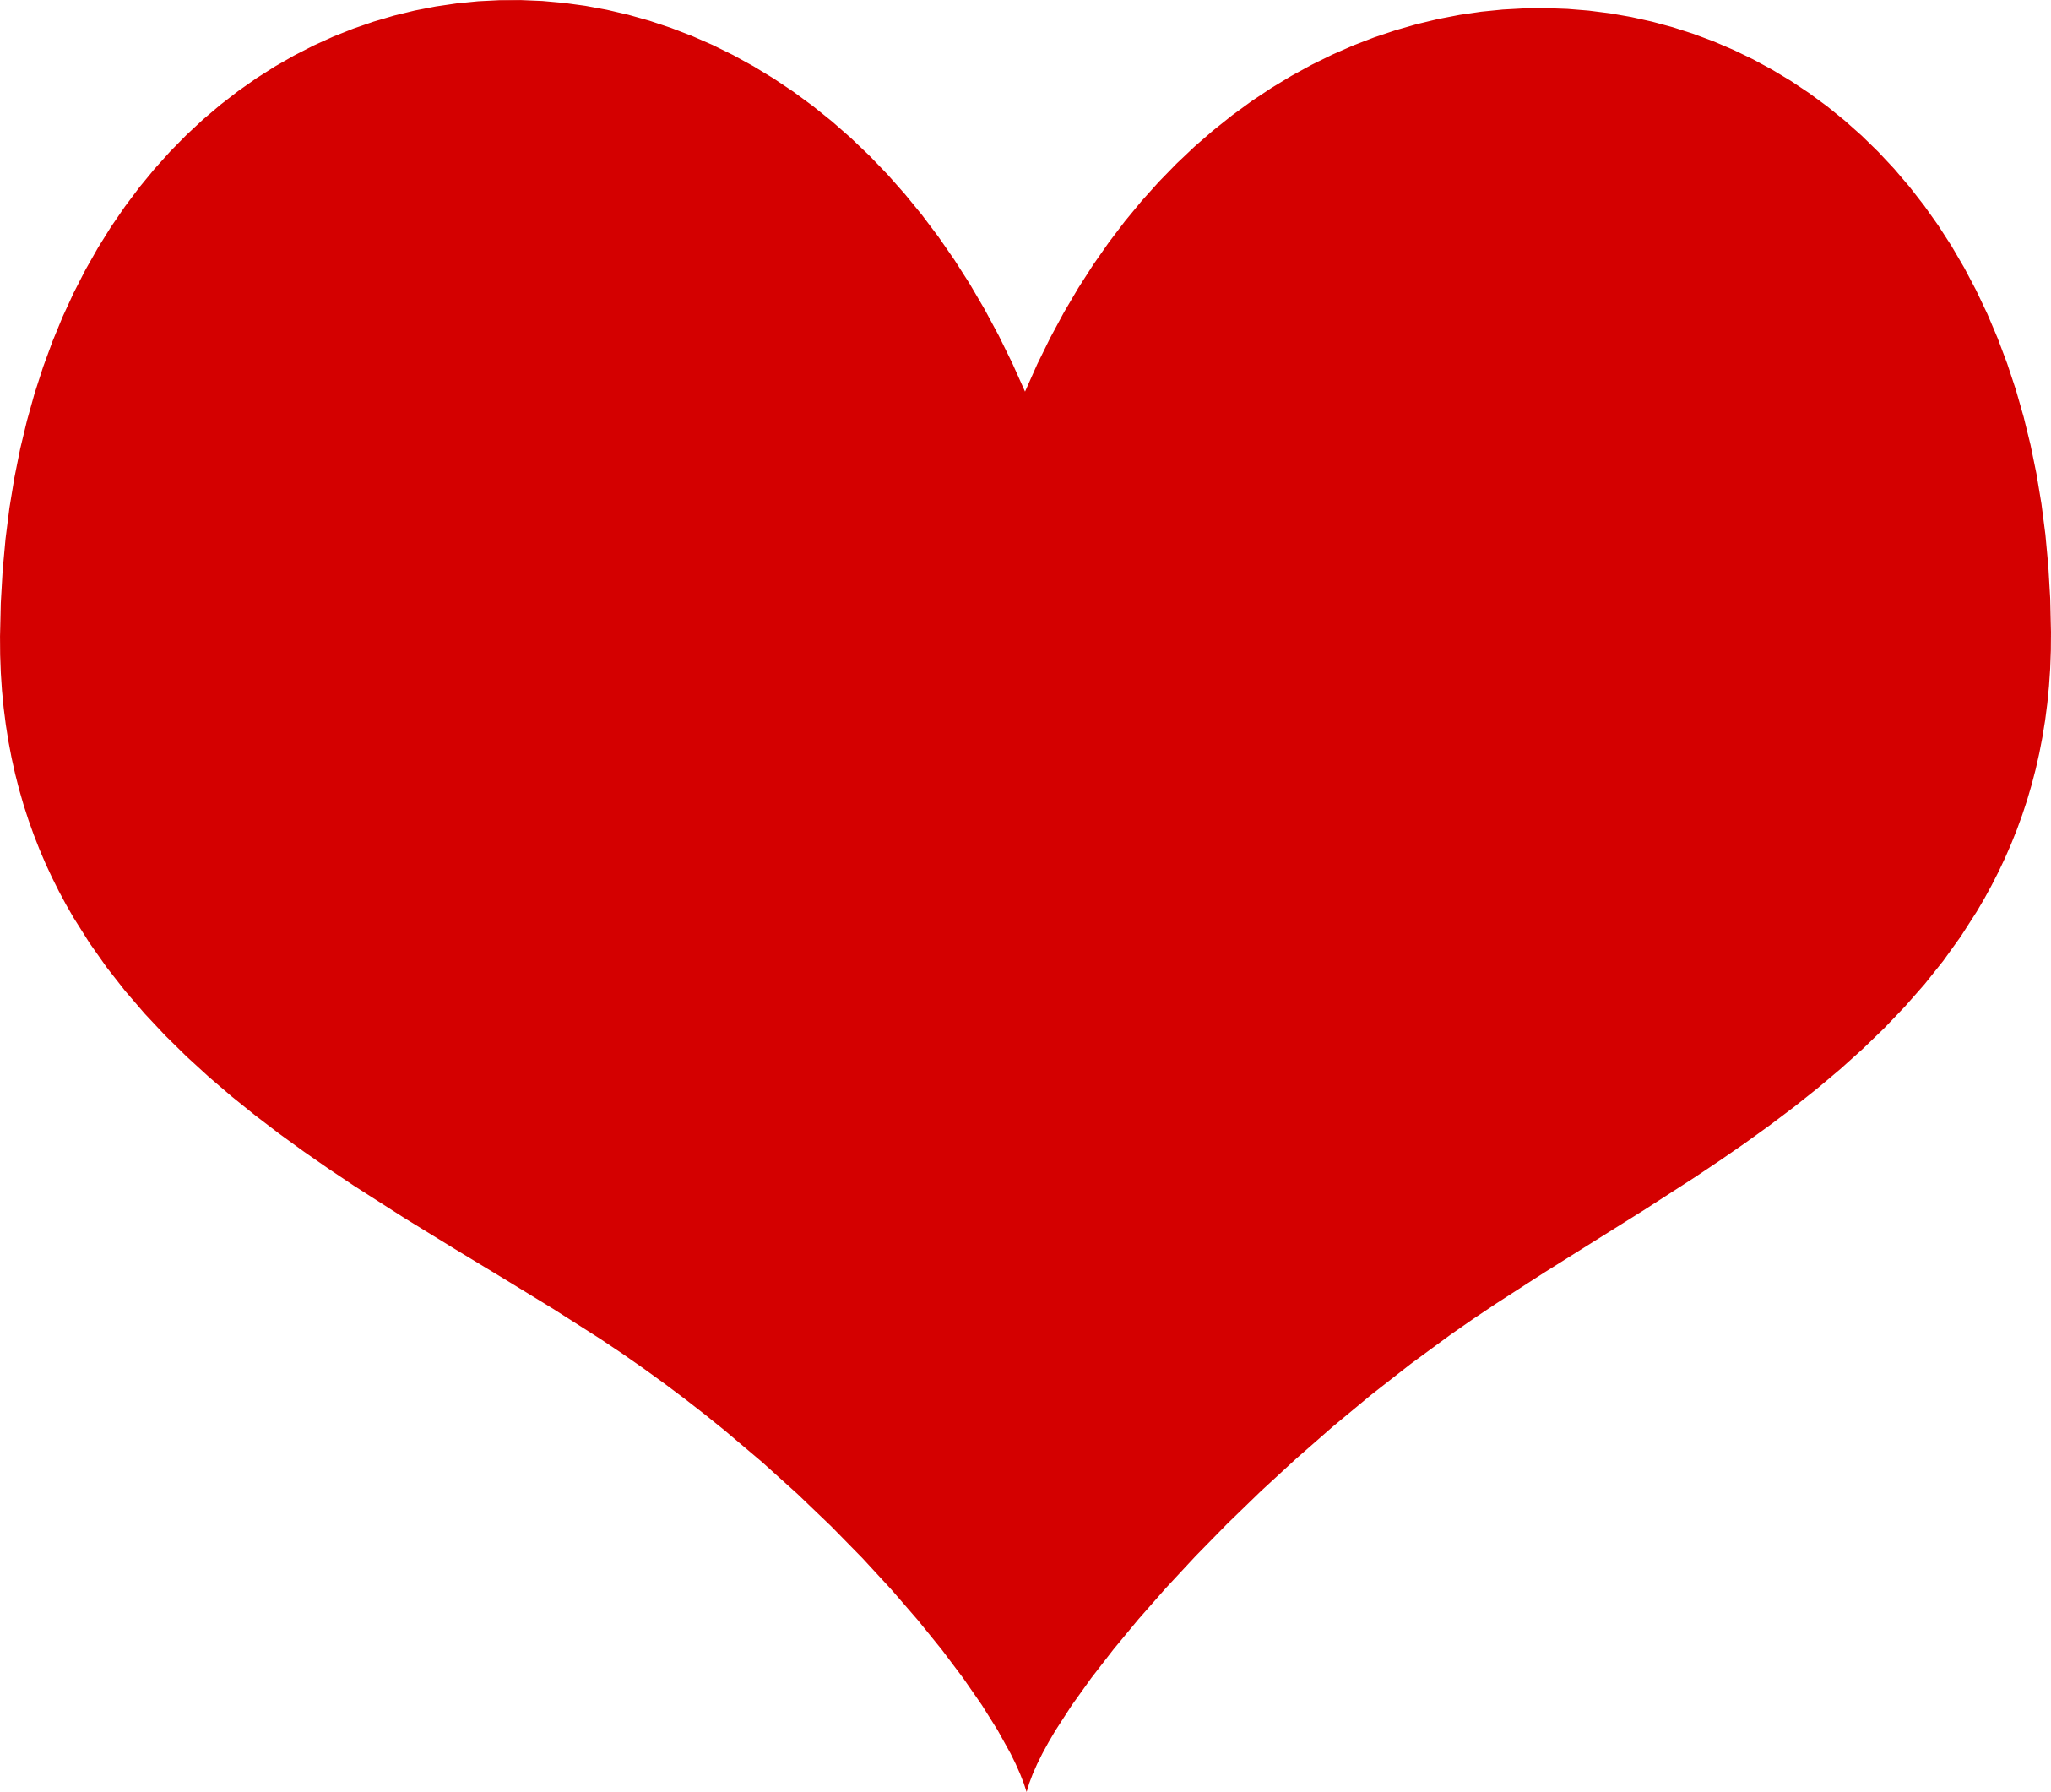 Heart Designs Clipart; Can .-Heart Designs Clipart; Can .-7